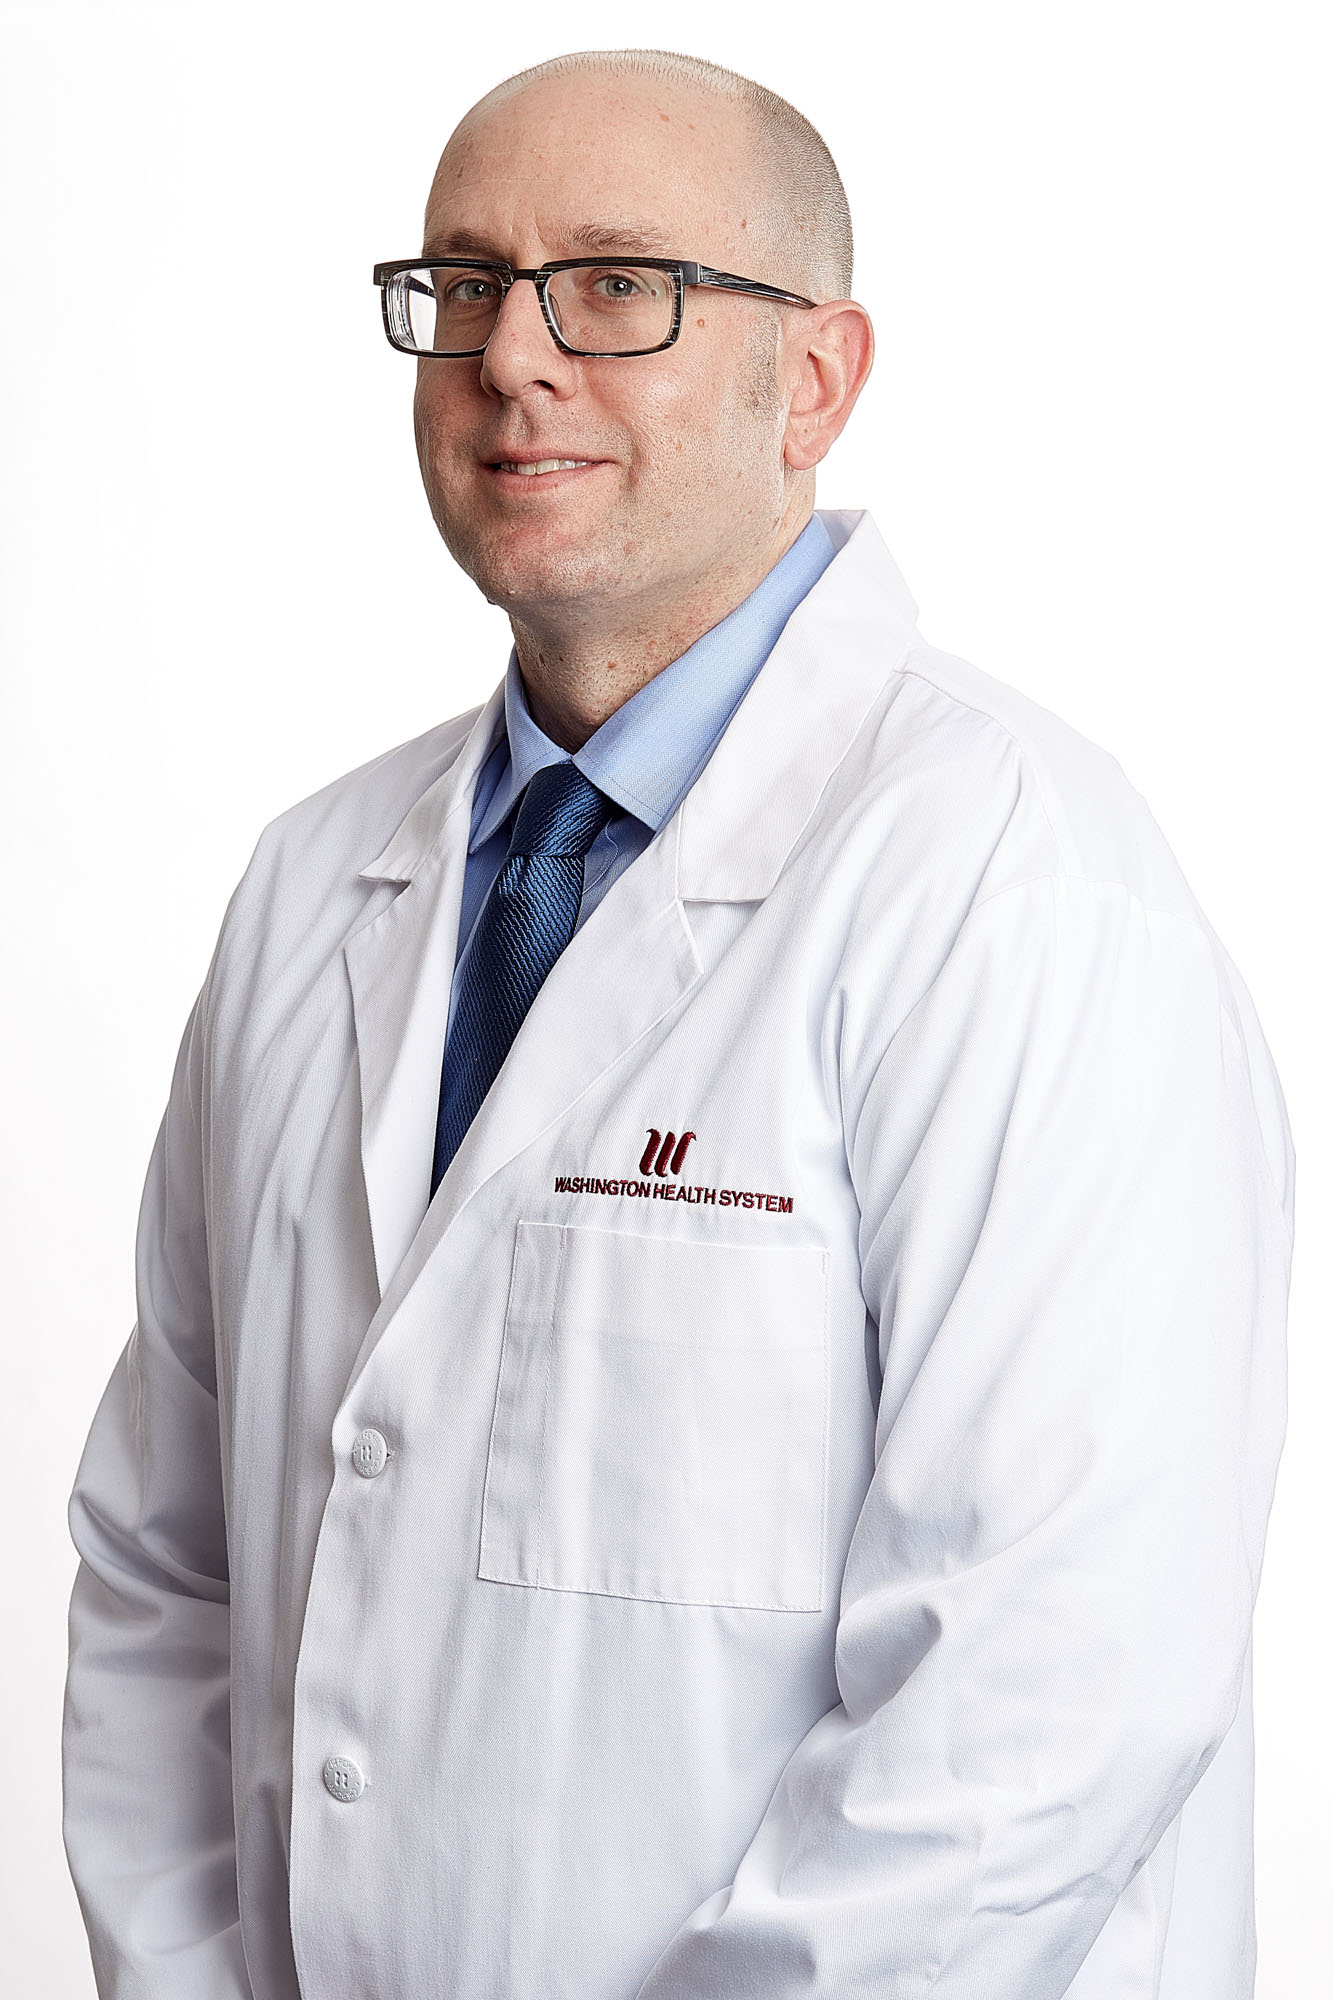 Photo of Chris Gisler, M.D.